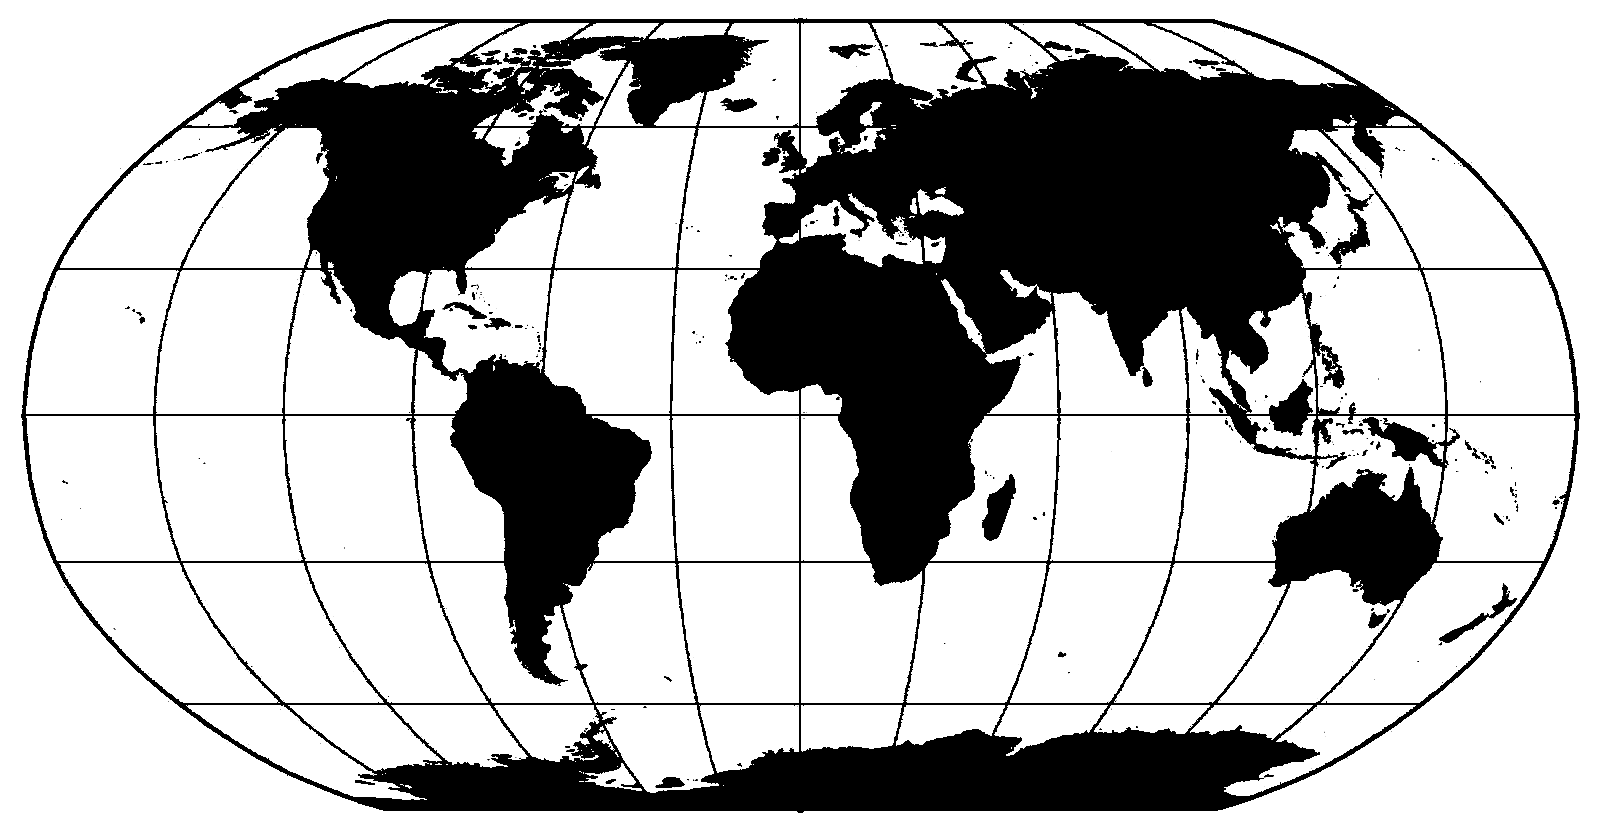 PNG Map Black And White - 79484